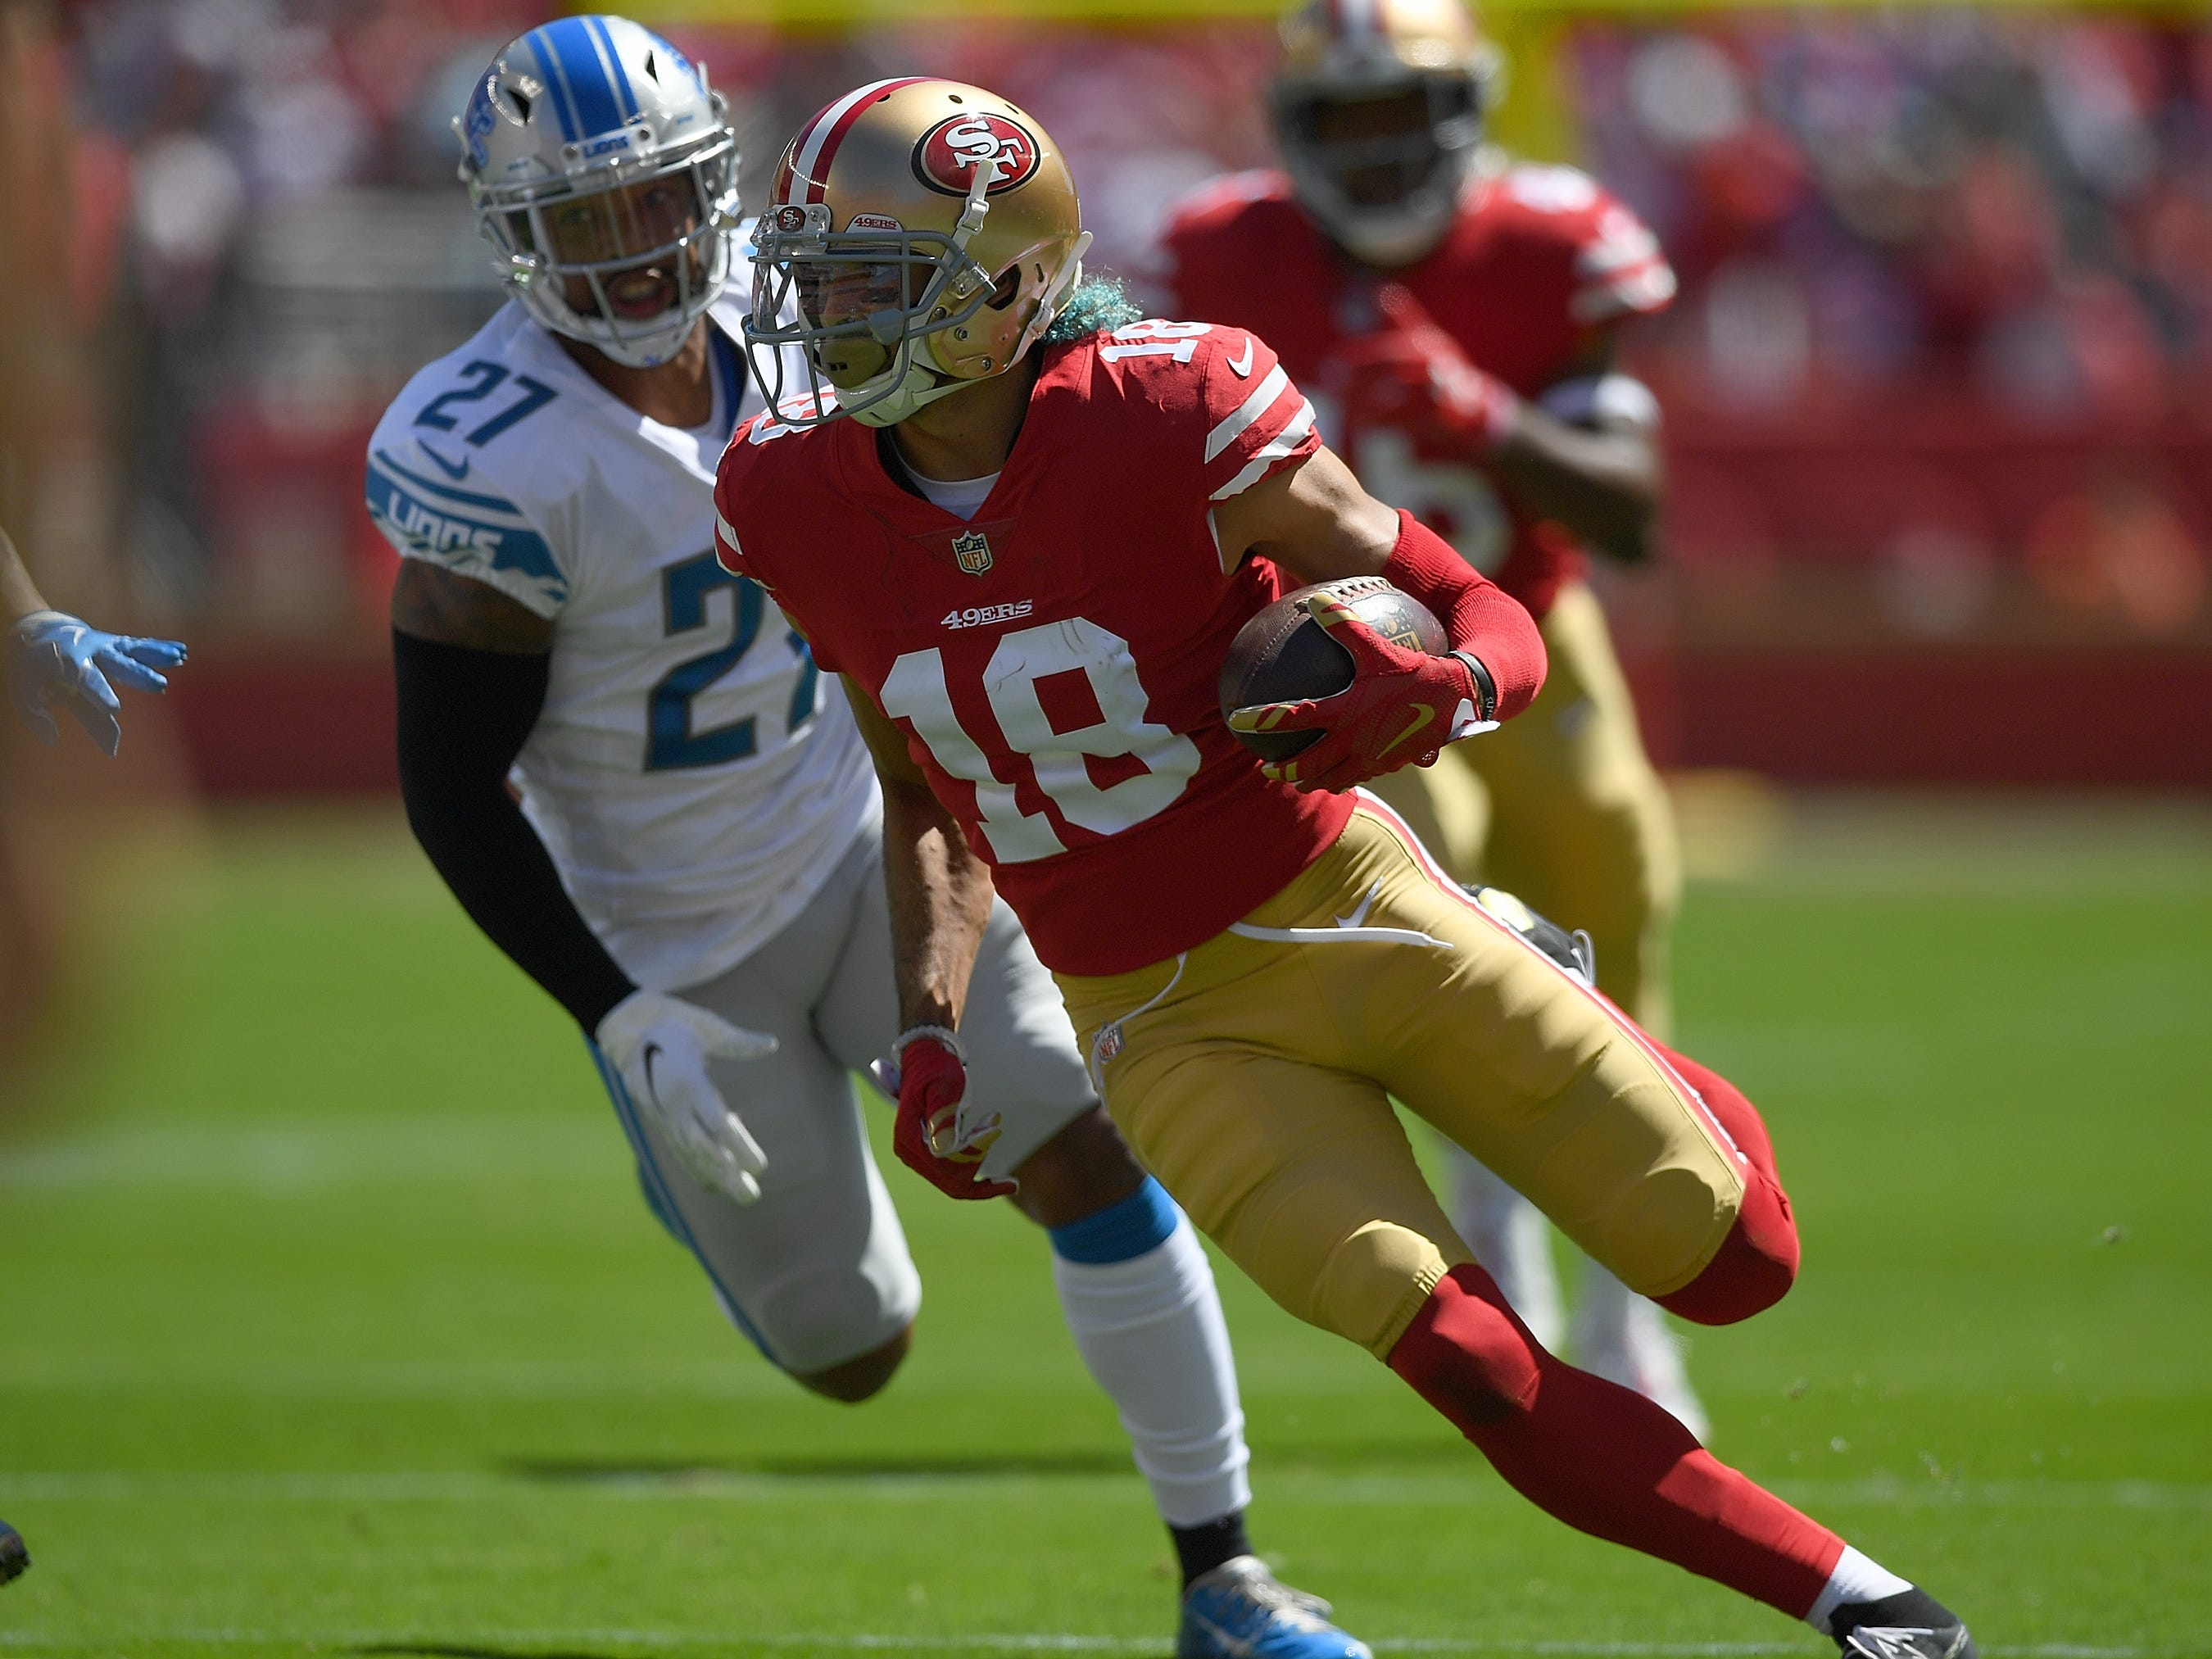 49ers' Dante Pettis catches a pass and runs for a first down against the Detroit Lions during the first quarter.